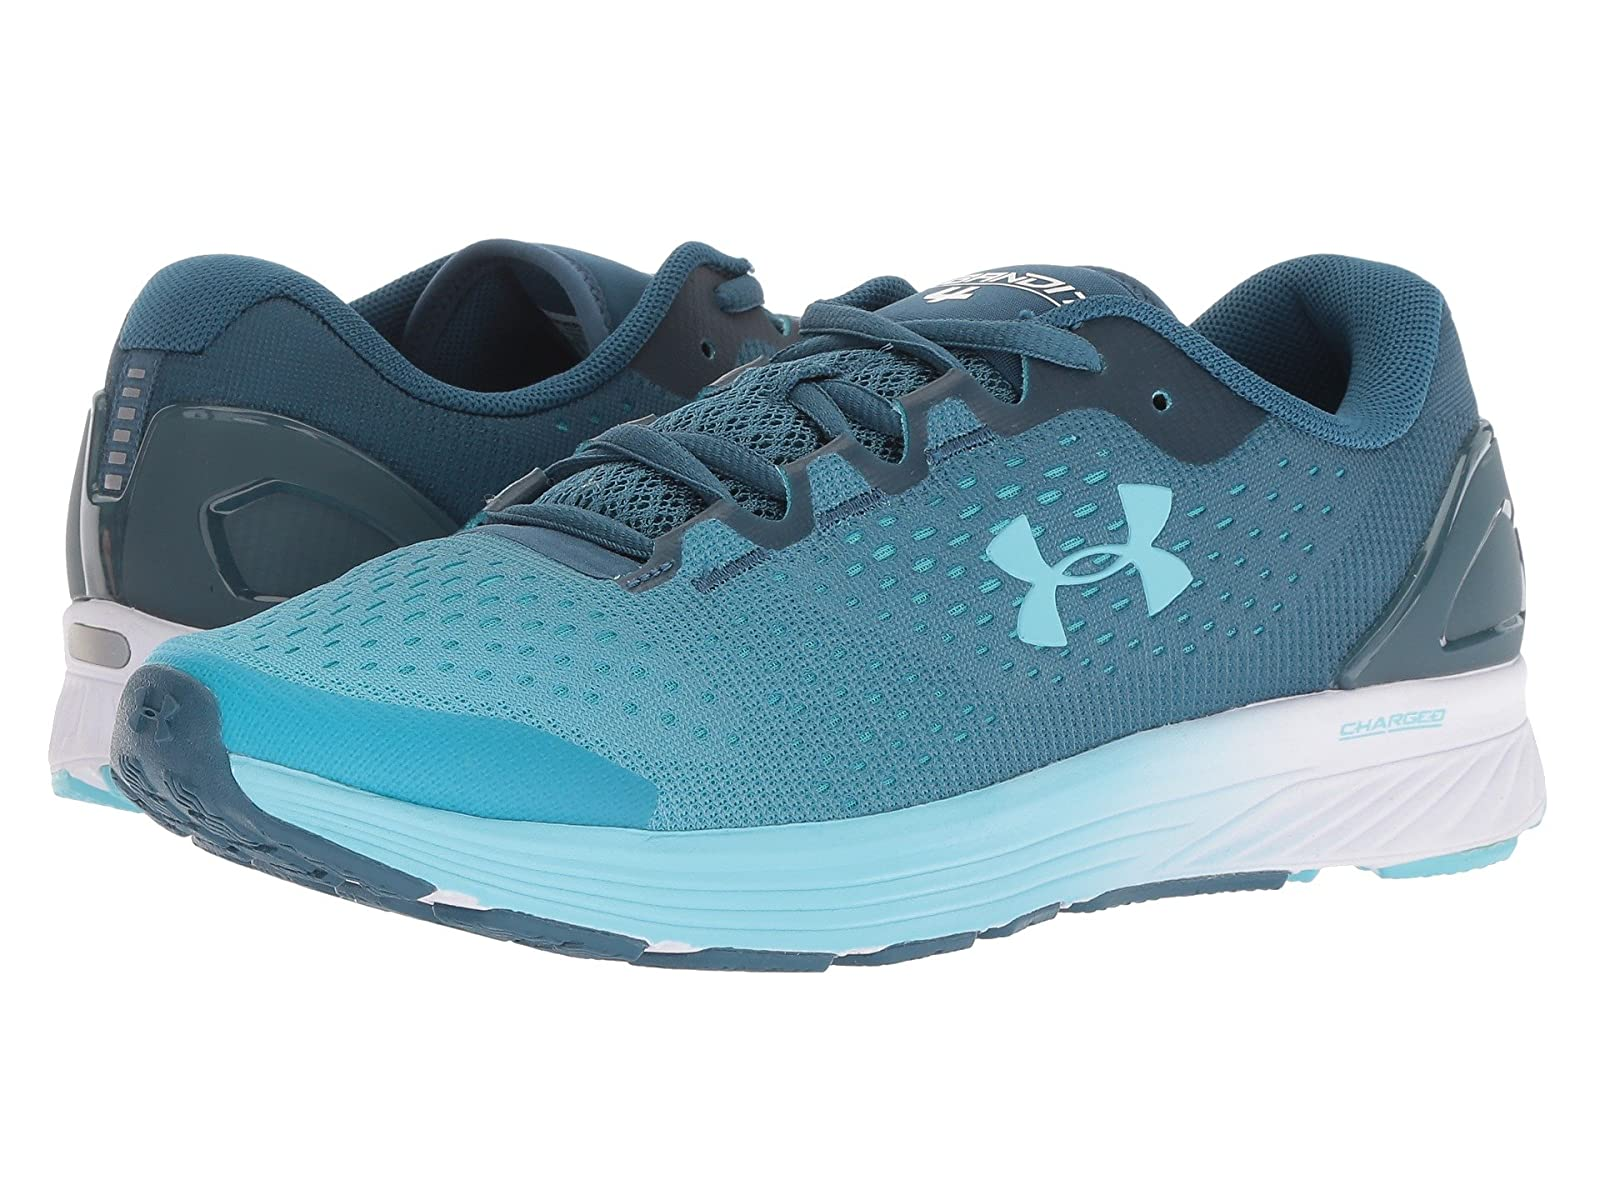 Under Armour UA Charged Bandit 4Atmospheric grades have affordable shoes